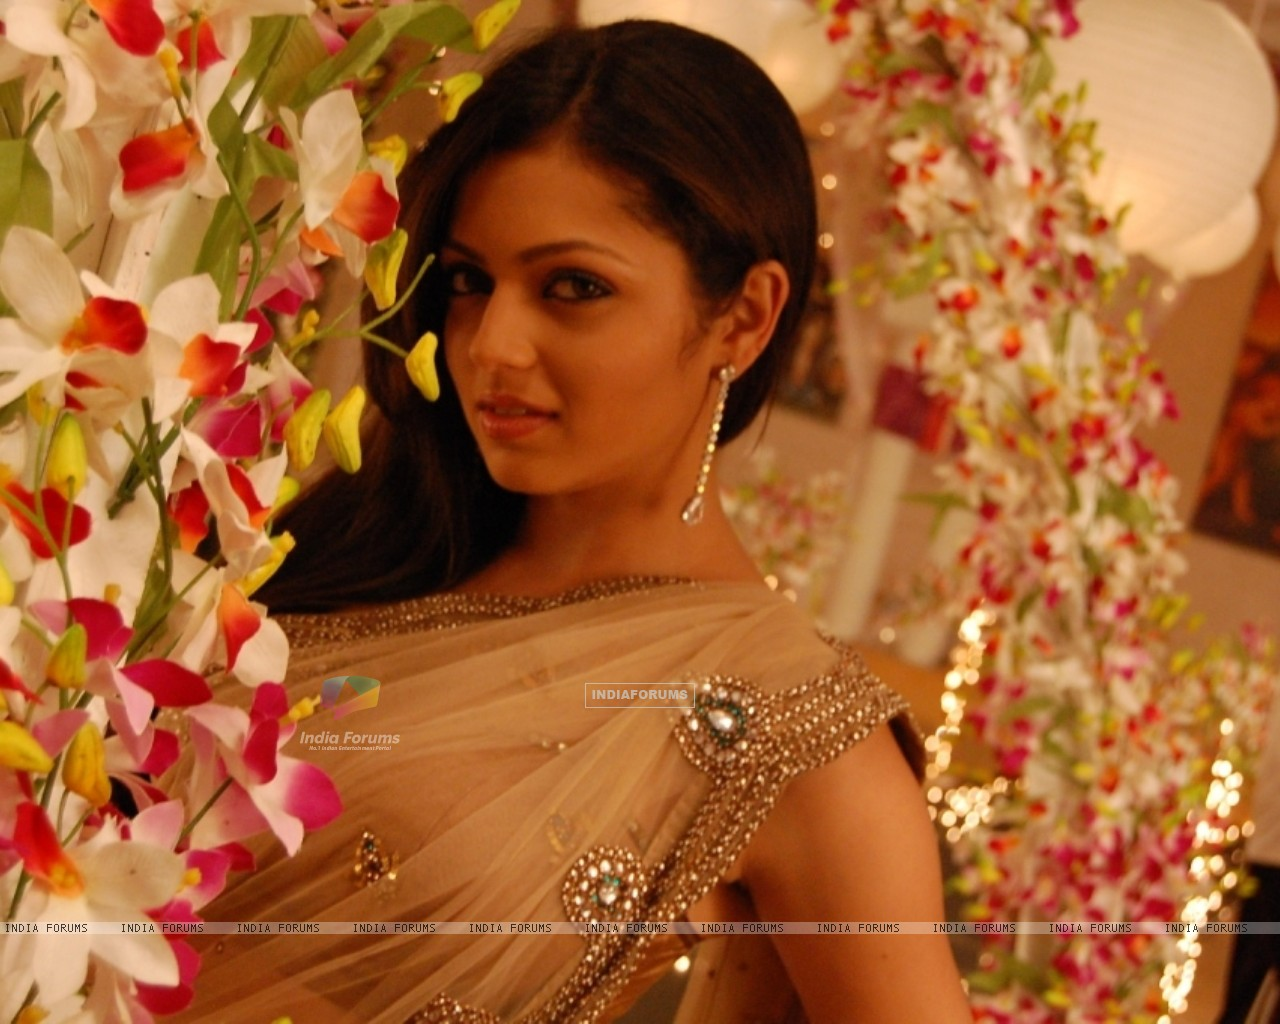 Wallpaper - Drashti Dhami as Geet (101628) size:drashti dhami